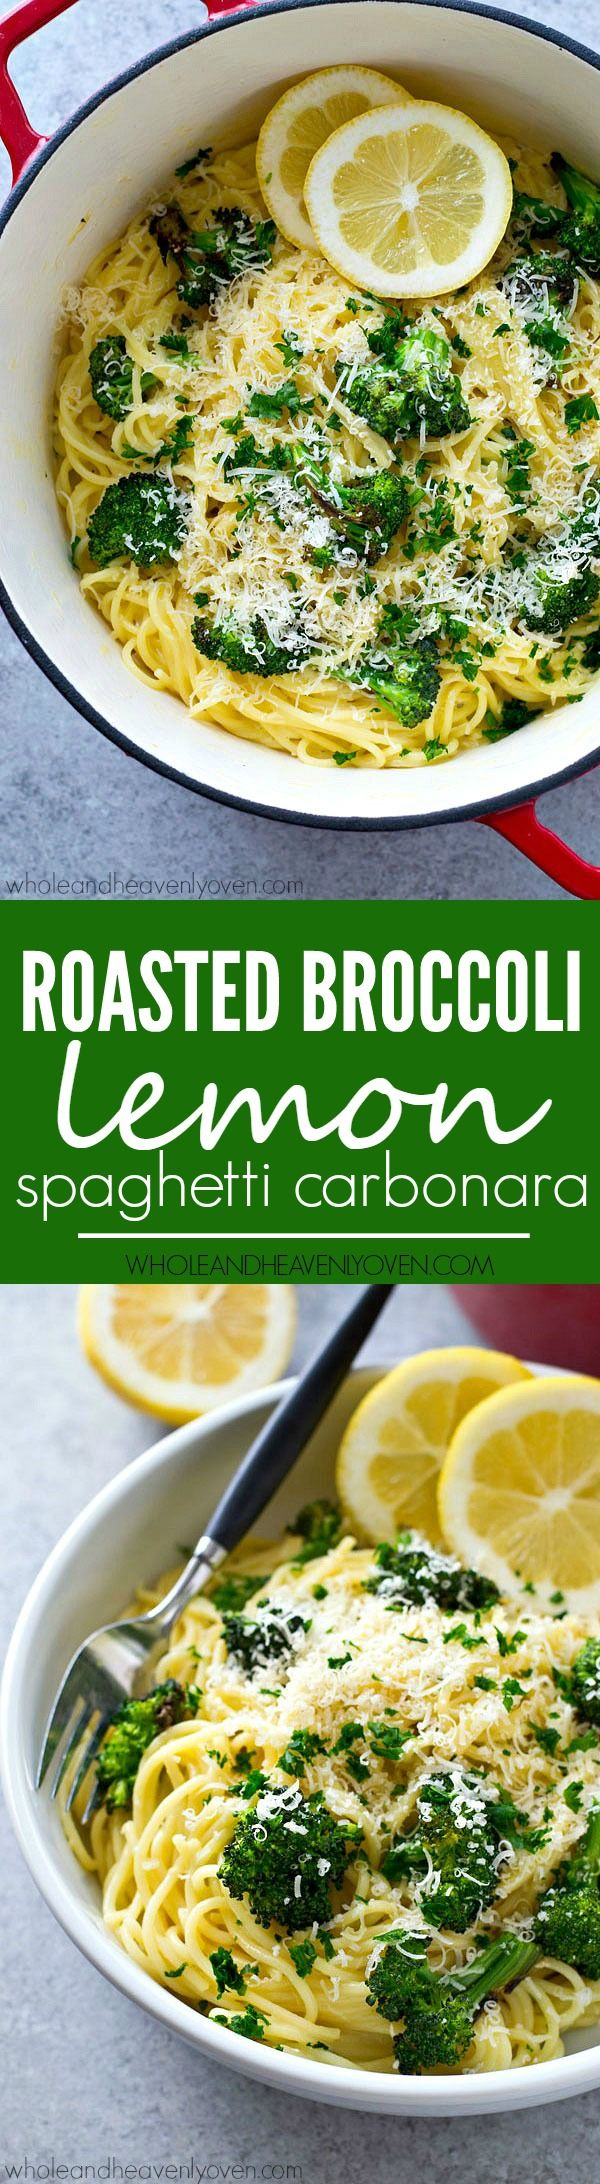 Spaghetti carbonara with a healthy spring twist! These easy noodles are extra-creamy and loaded with roasted broccoli and lots of lemon goodness.